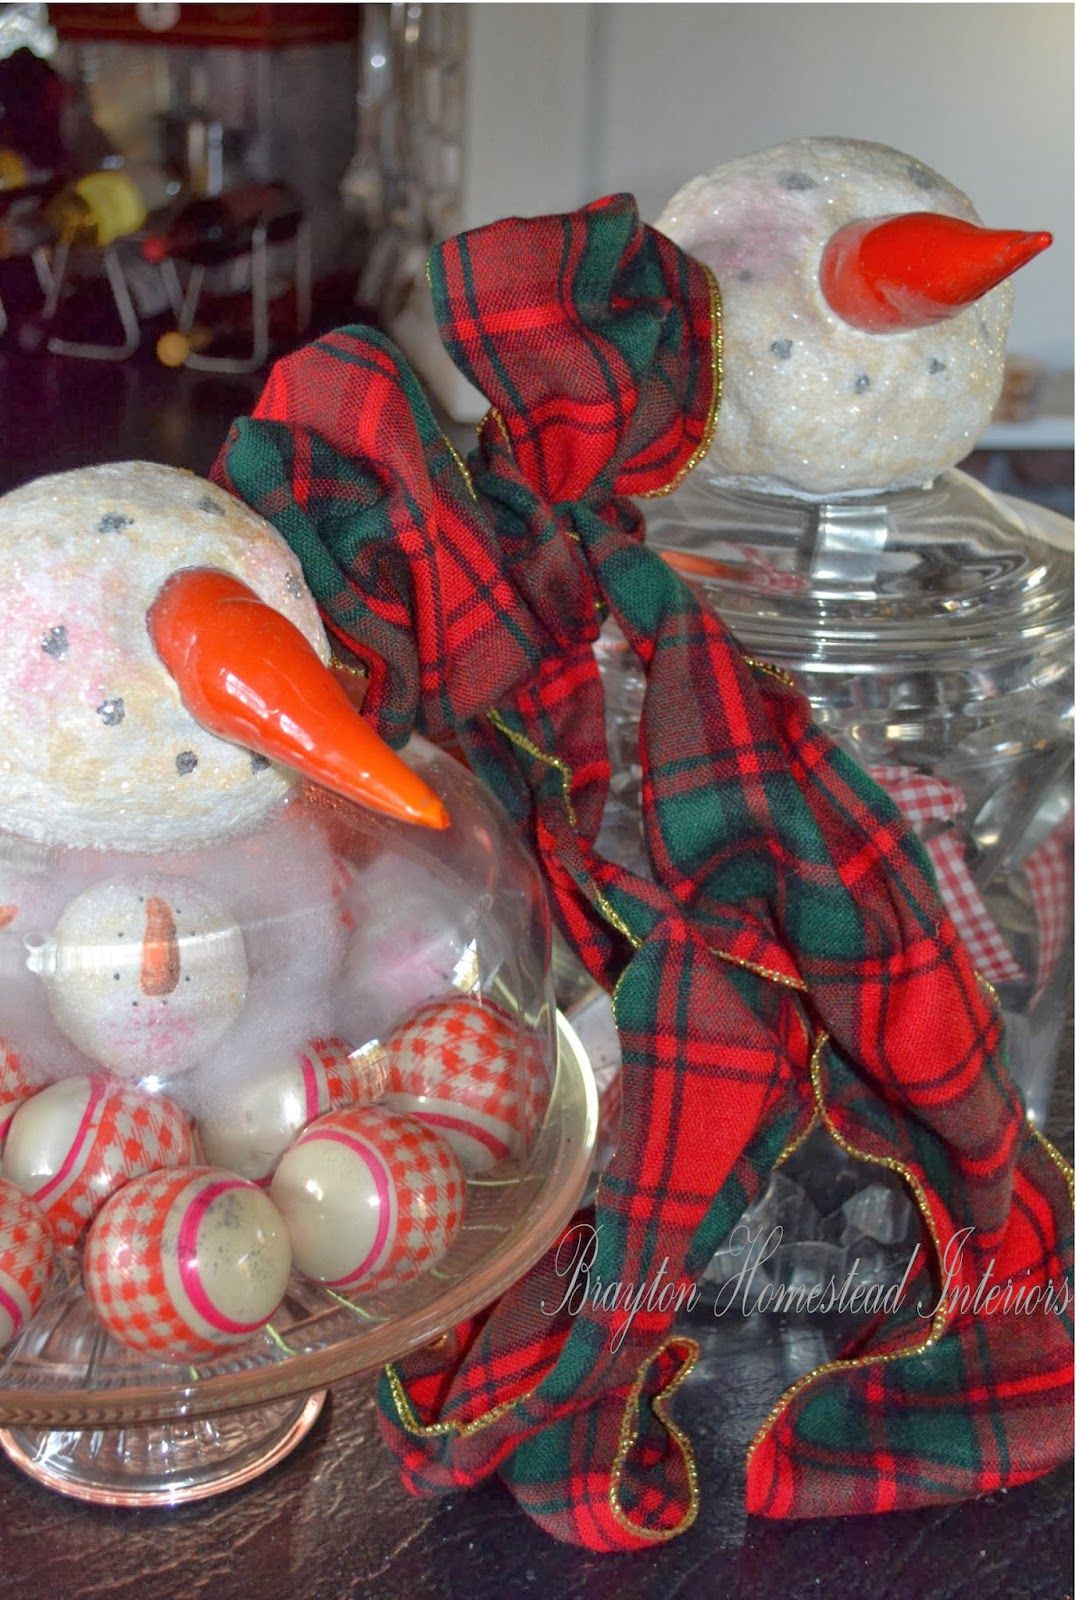 BRAYTON HOMESTEAD INTERIORS: Snowman jars in the kitchen